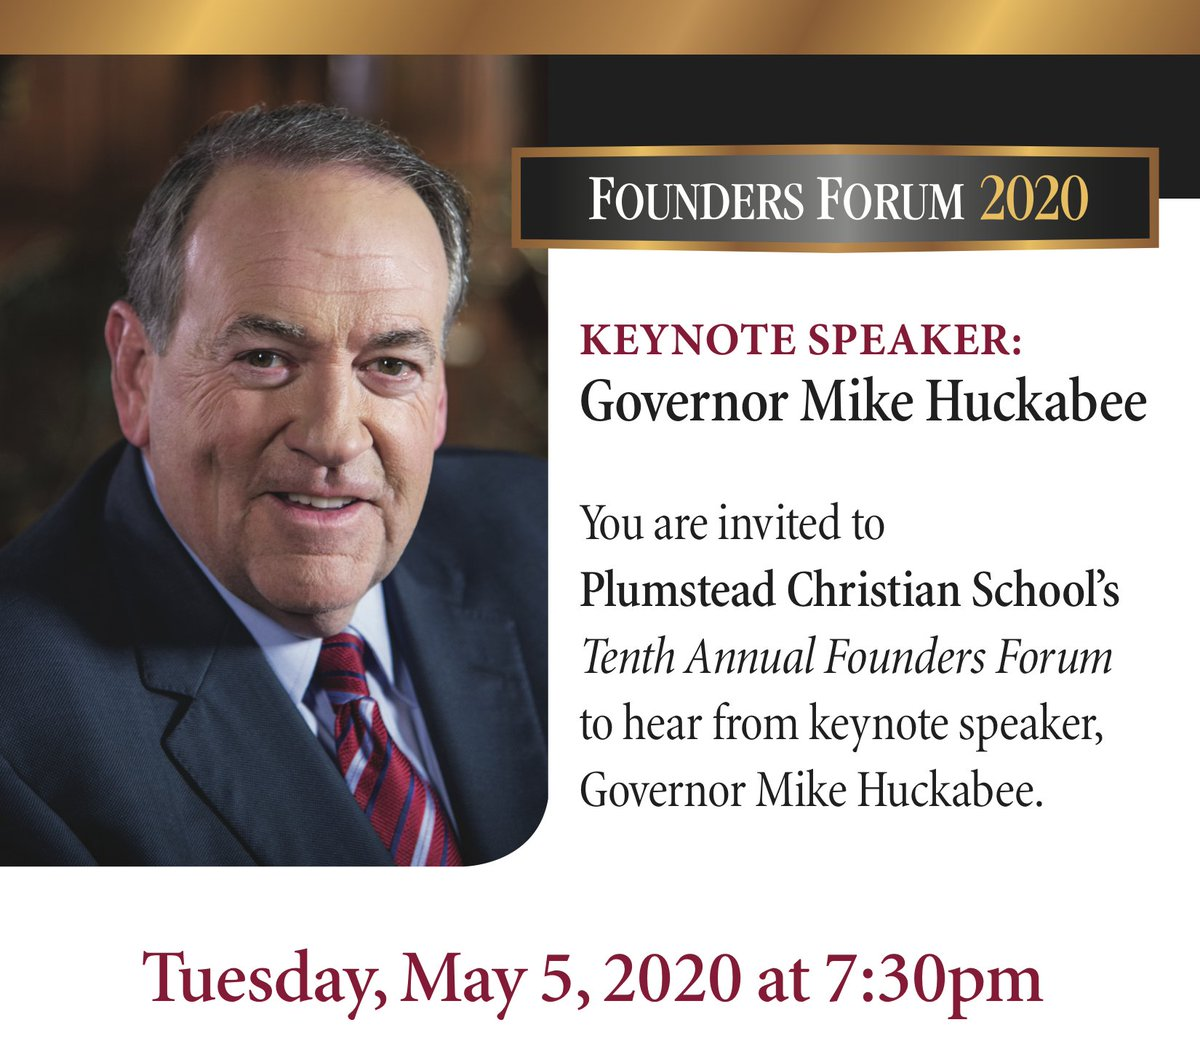 You're invited! #FoundersForum feat. @GovMikeHuckabee  https://t.co/gVsdqKH3ay  @PlumsteadCS #Premiere #Independent #Preparatory #Christian #School #CollegePrep #ChristianSchool #Grow #Faith #Virtue #Knowledge #10thAnnual #10th #Forum https://t.co/oKErKU7oO1